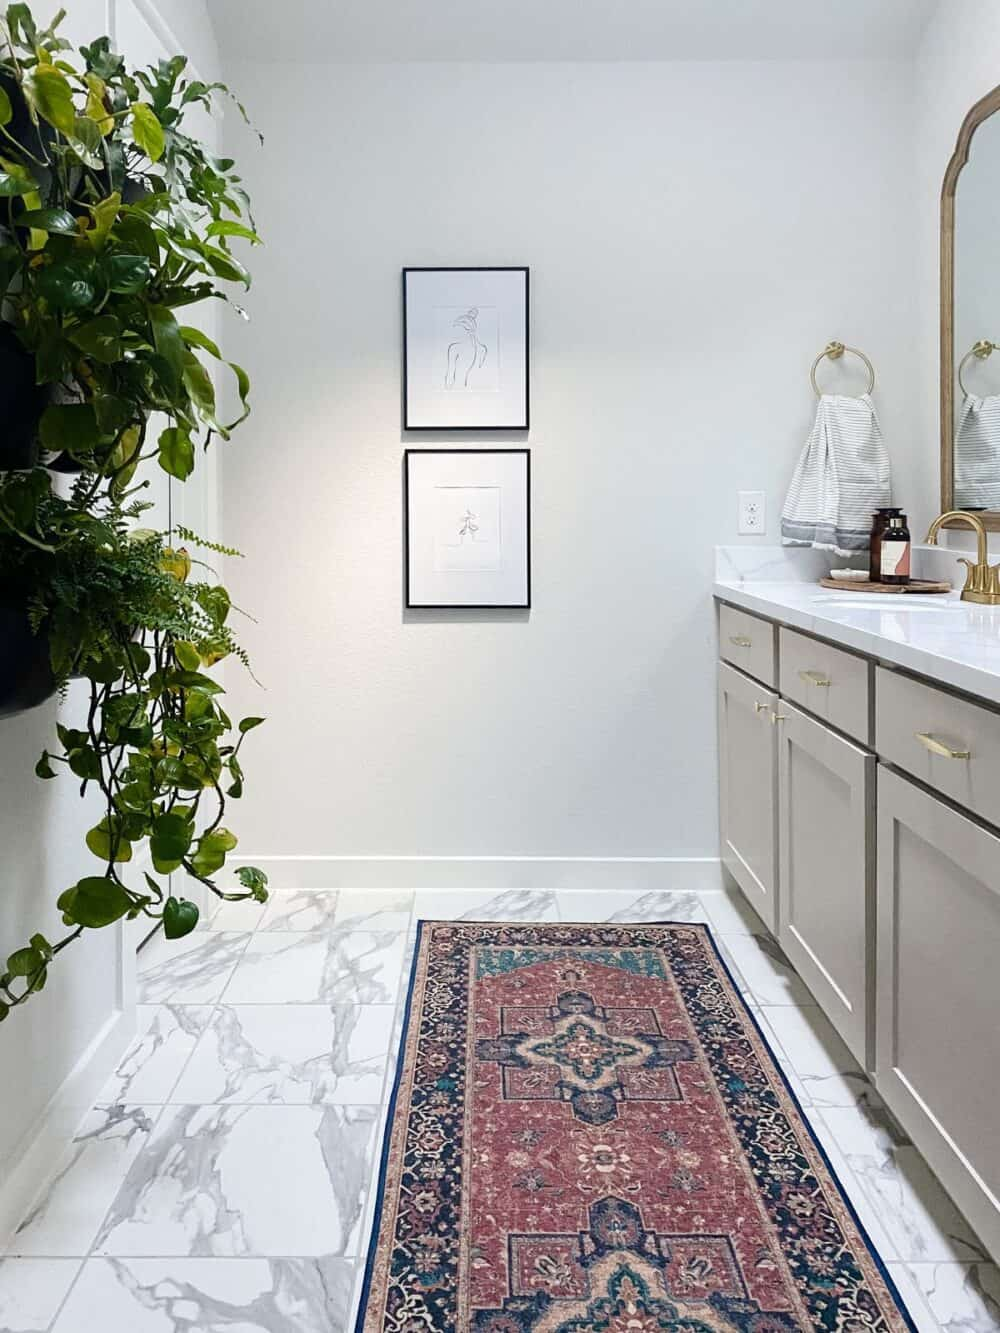 Master bathroom after renovation, with a plant wall and a red runner